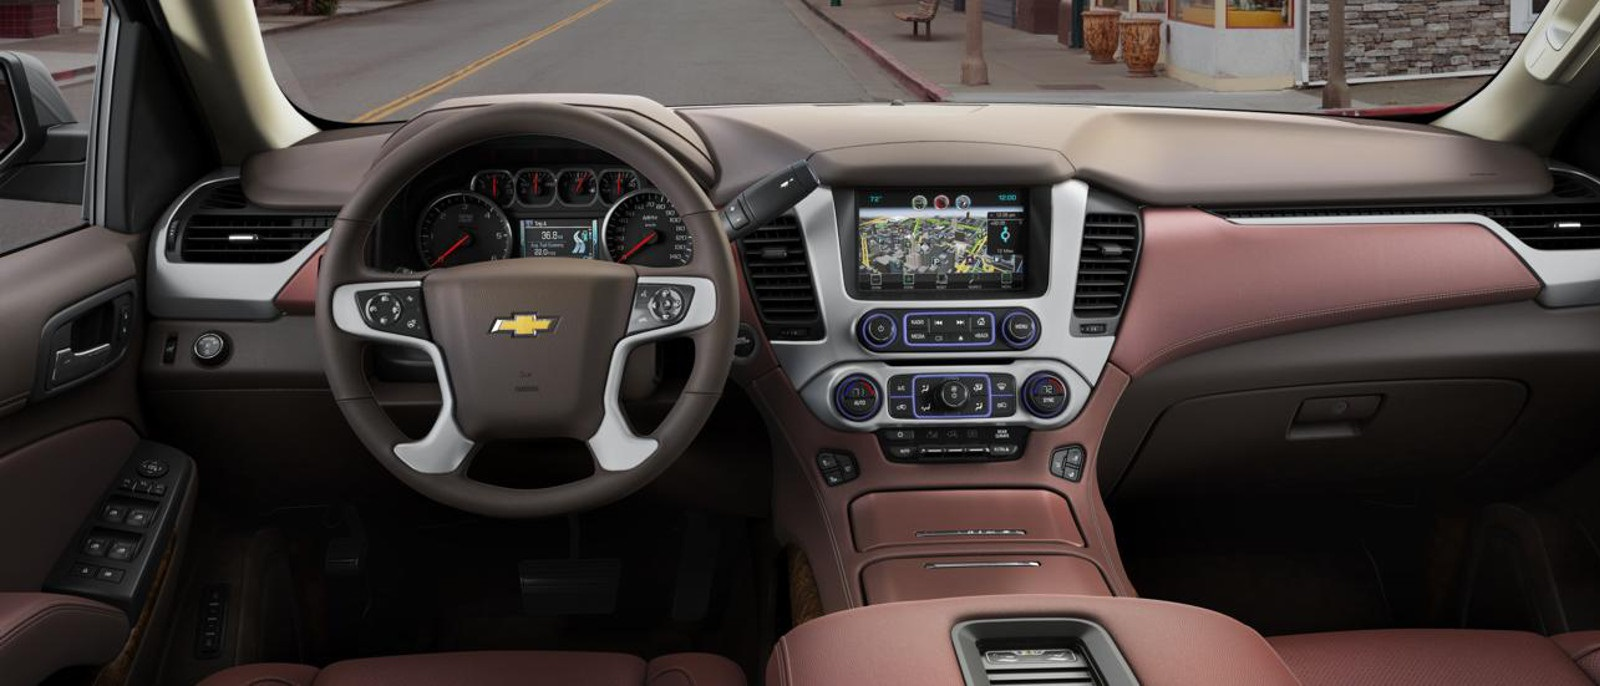 2017 Chevy Tahoe Interior Colors